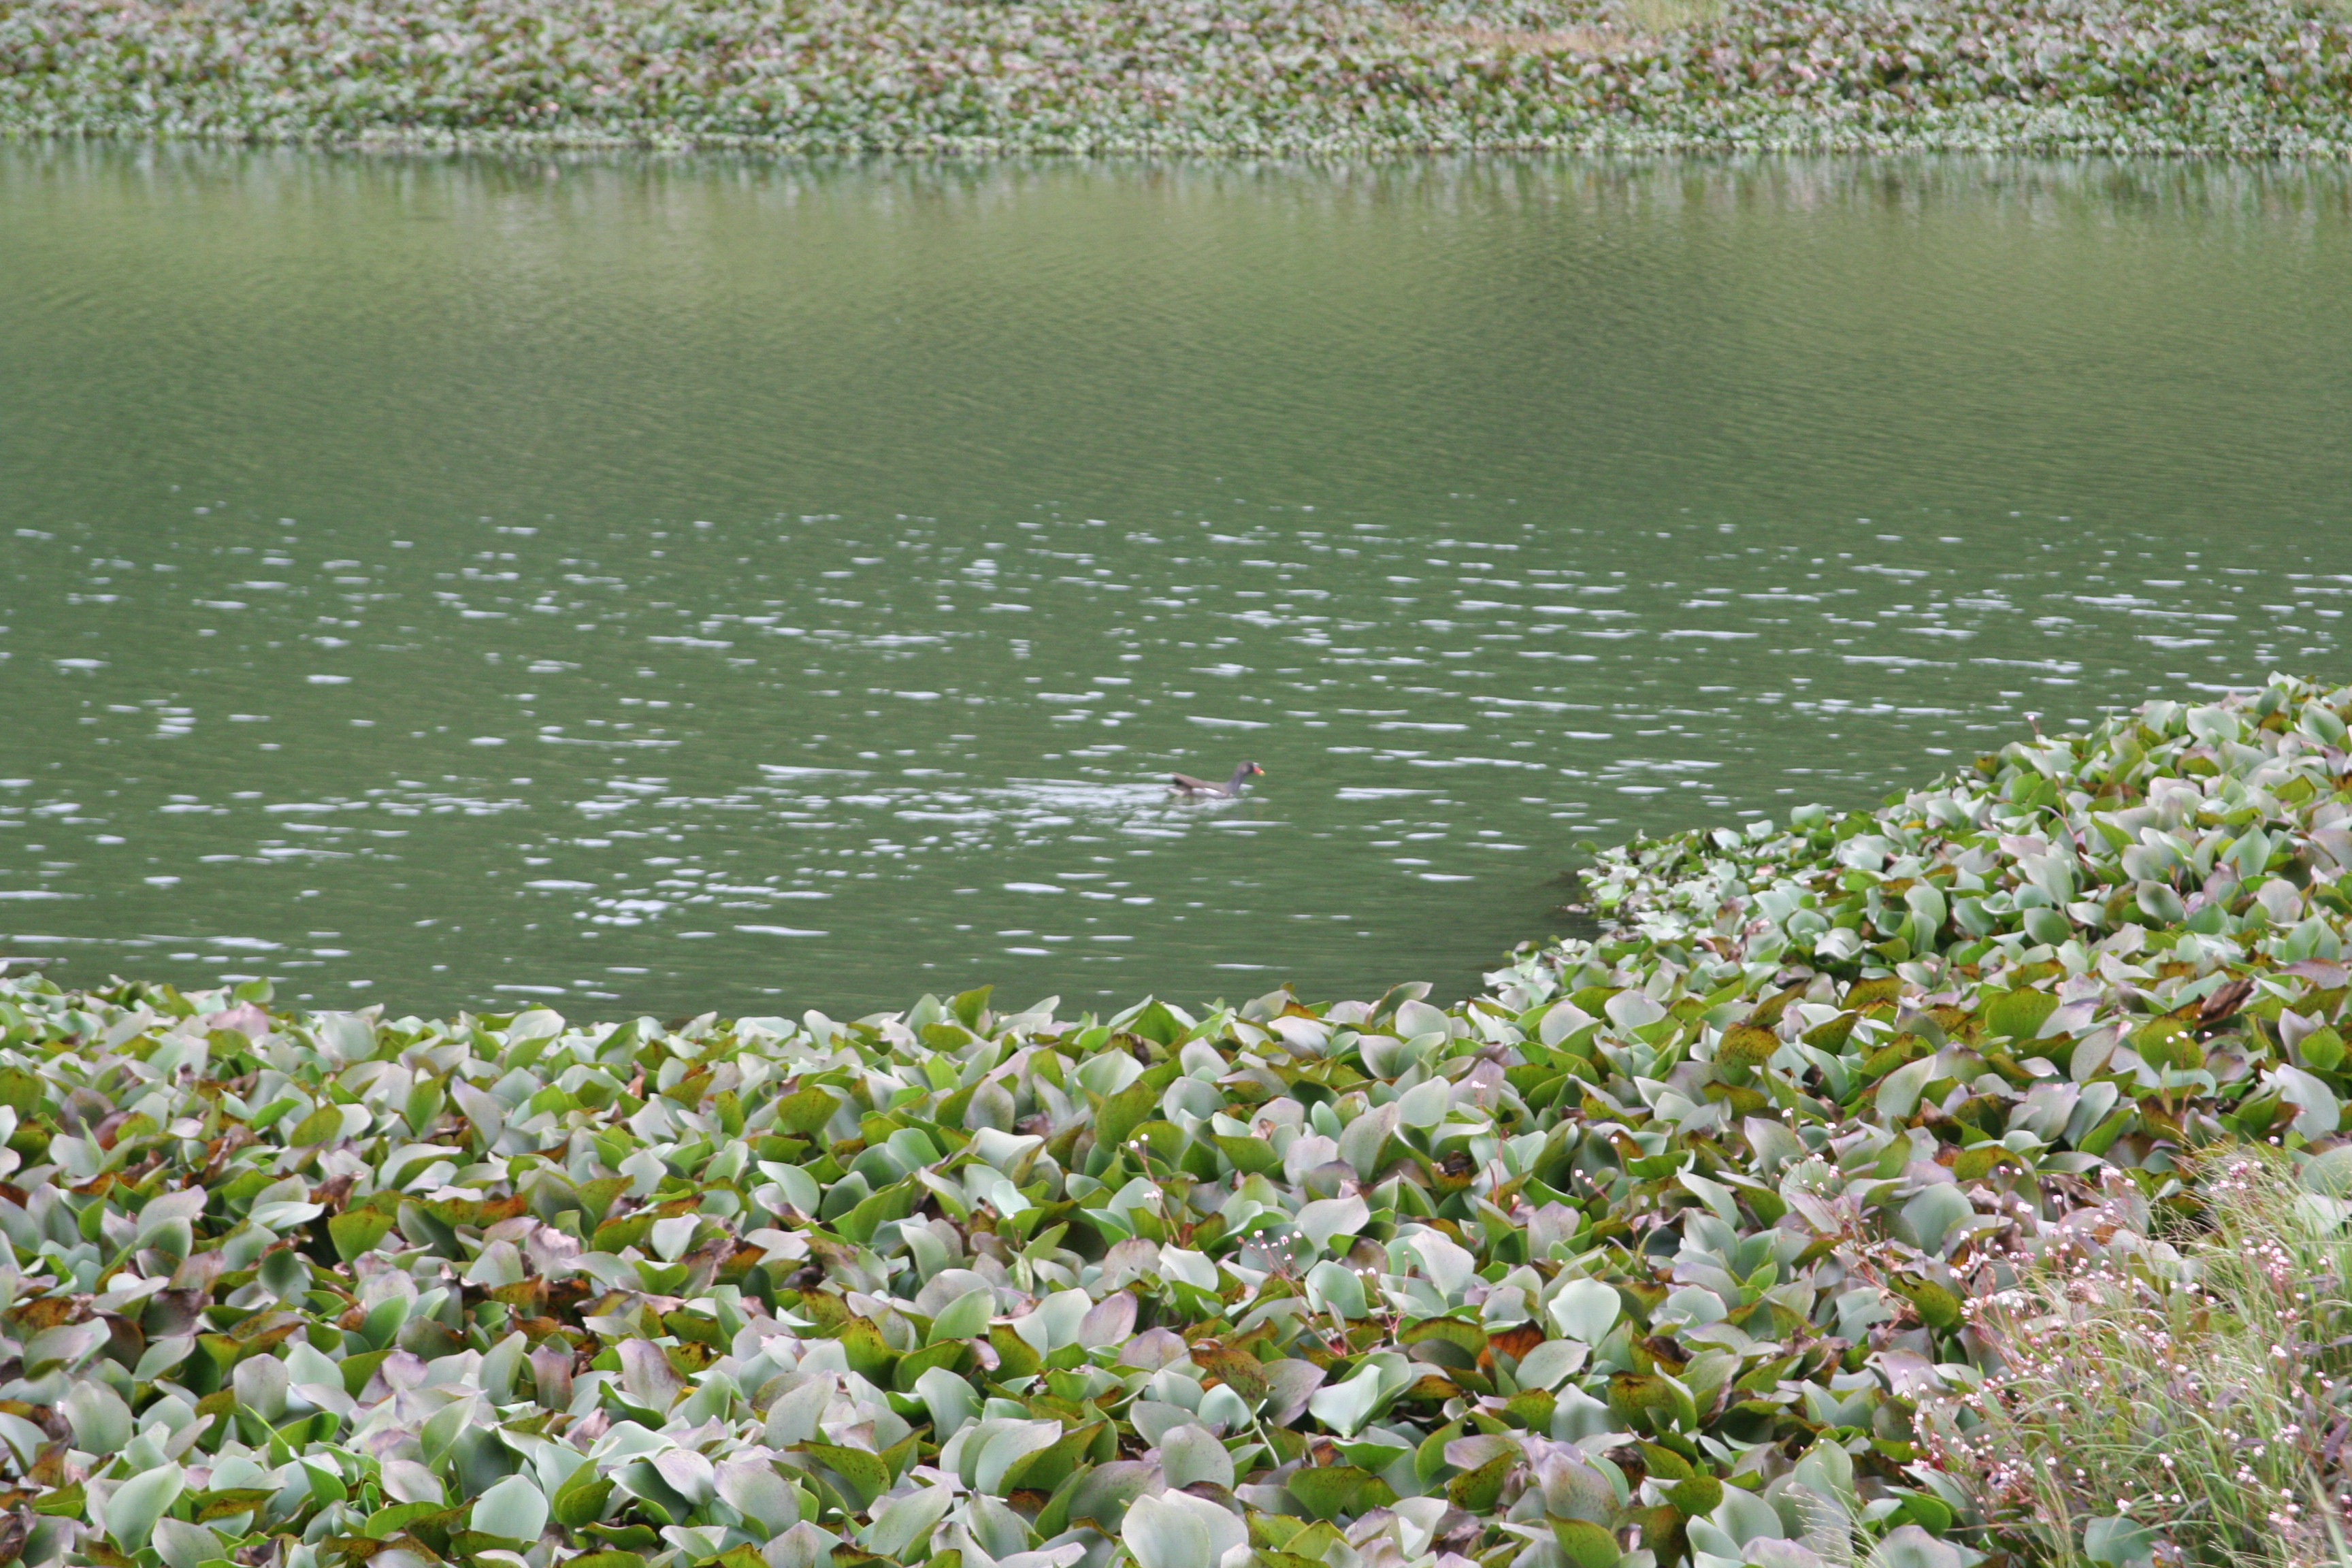 Ootty, Flowers, Green, Lake, Pond, HQ Photo